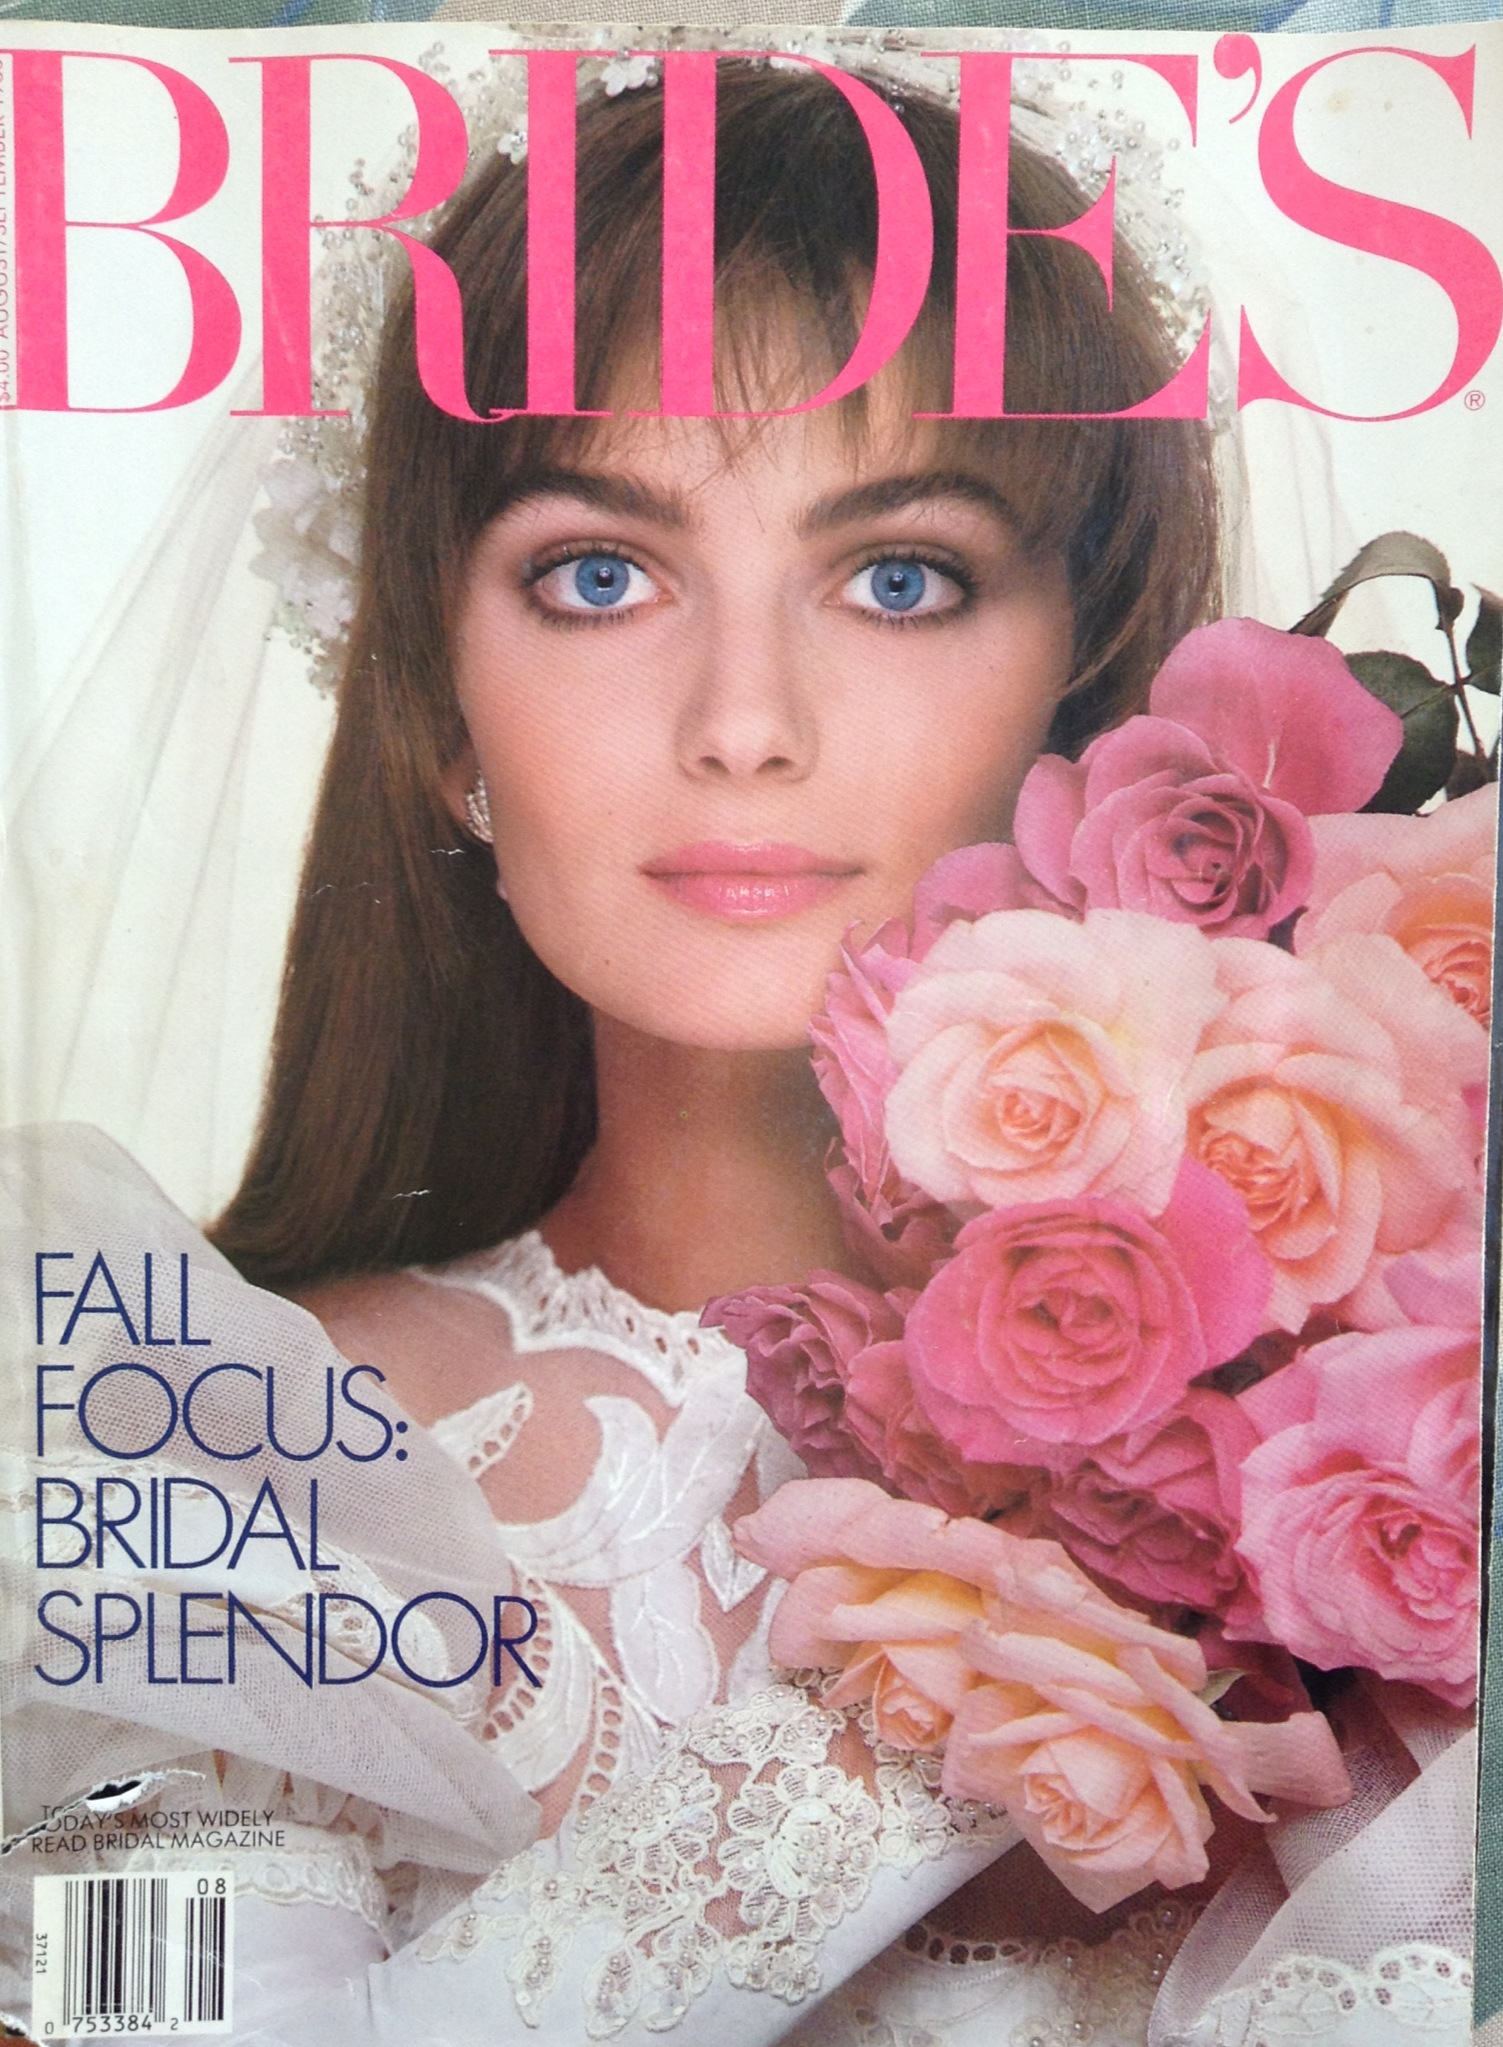 80s Fashion Exclusive The 11 Worst Wedding Gowns Bridesmaid Dresses From 1985 Bride S Magazine